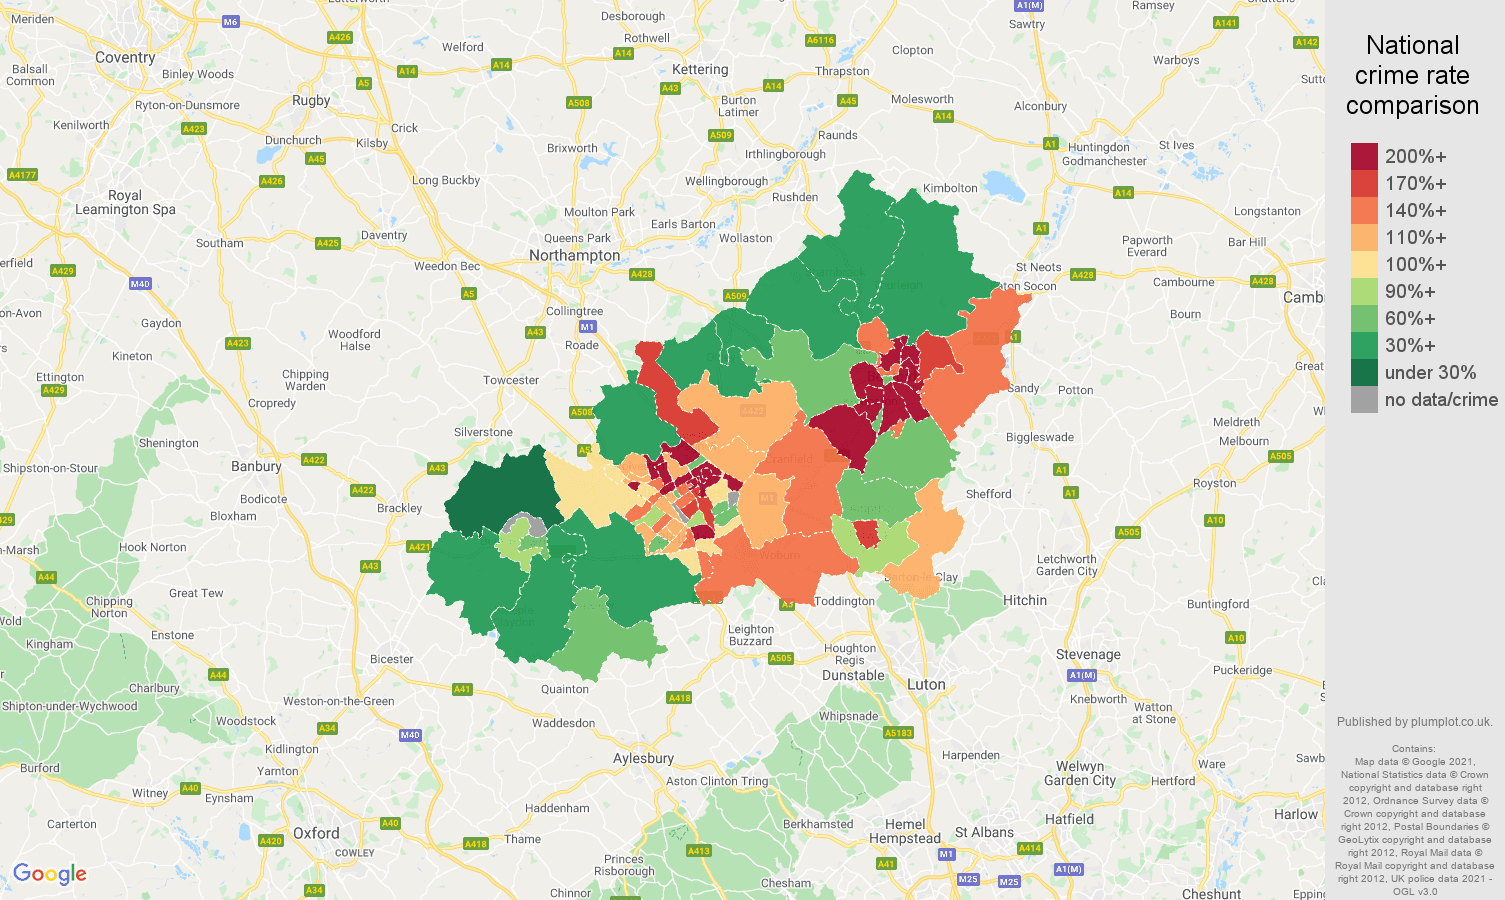 Milton Keynes vehicle crime rate comparison map